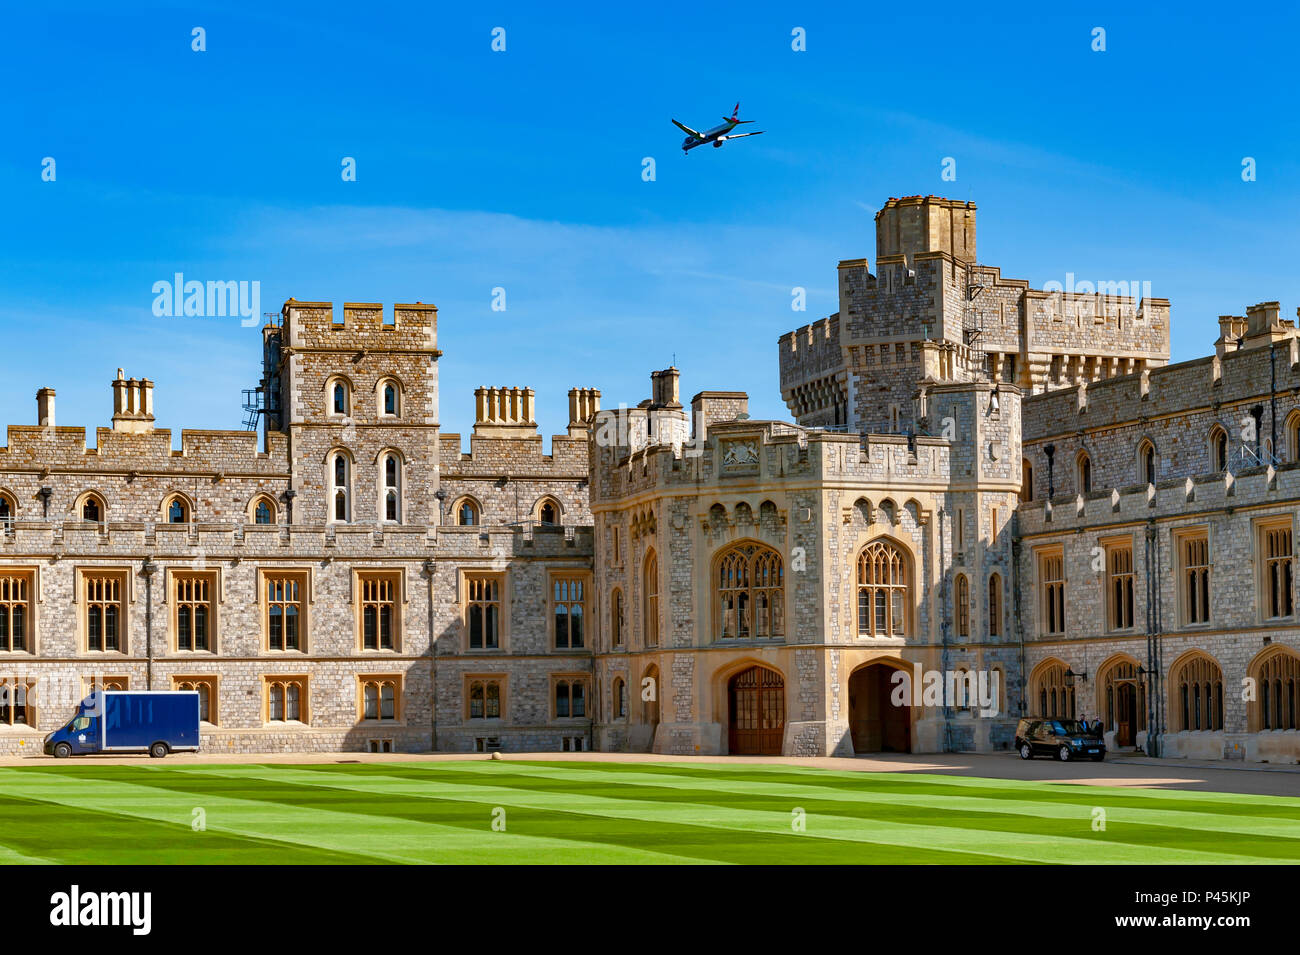 Airplane flying over group of buildings at Windsor Castle, a royal residence at Windsor in county of Berkshire, England, UK - Stock Image